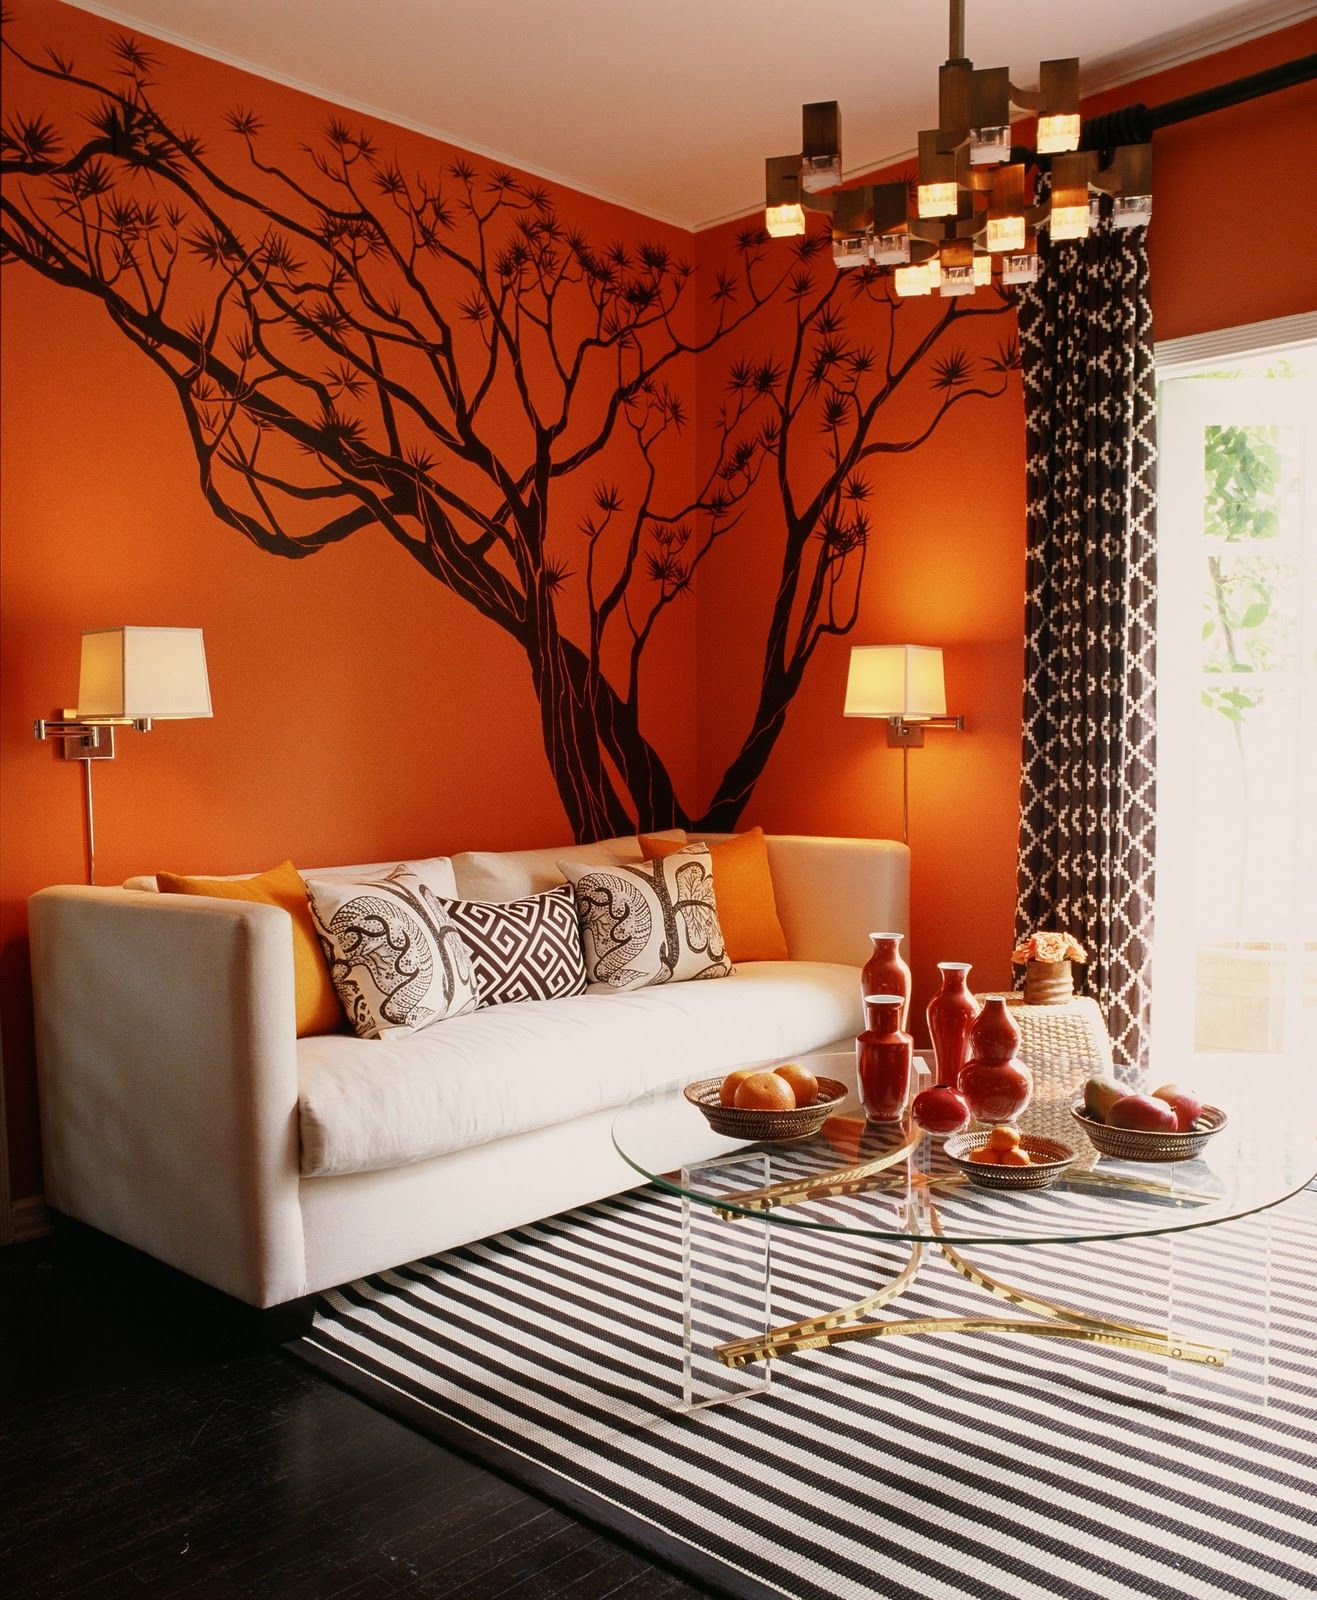 """Orange walls. I love this. =) I would attach some twinkle lights in certain spots on the branches so I could always have my own little """"starlit night""""..."""